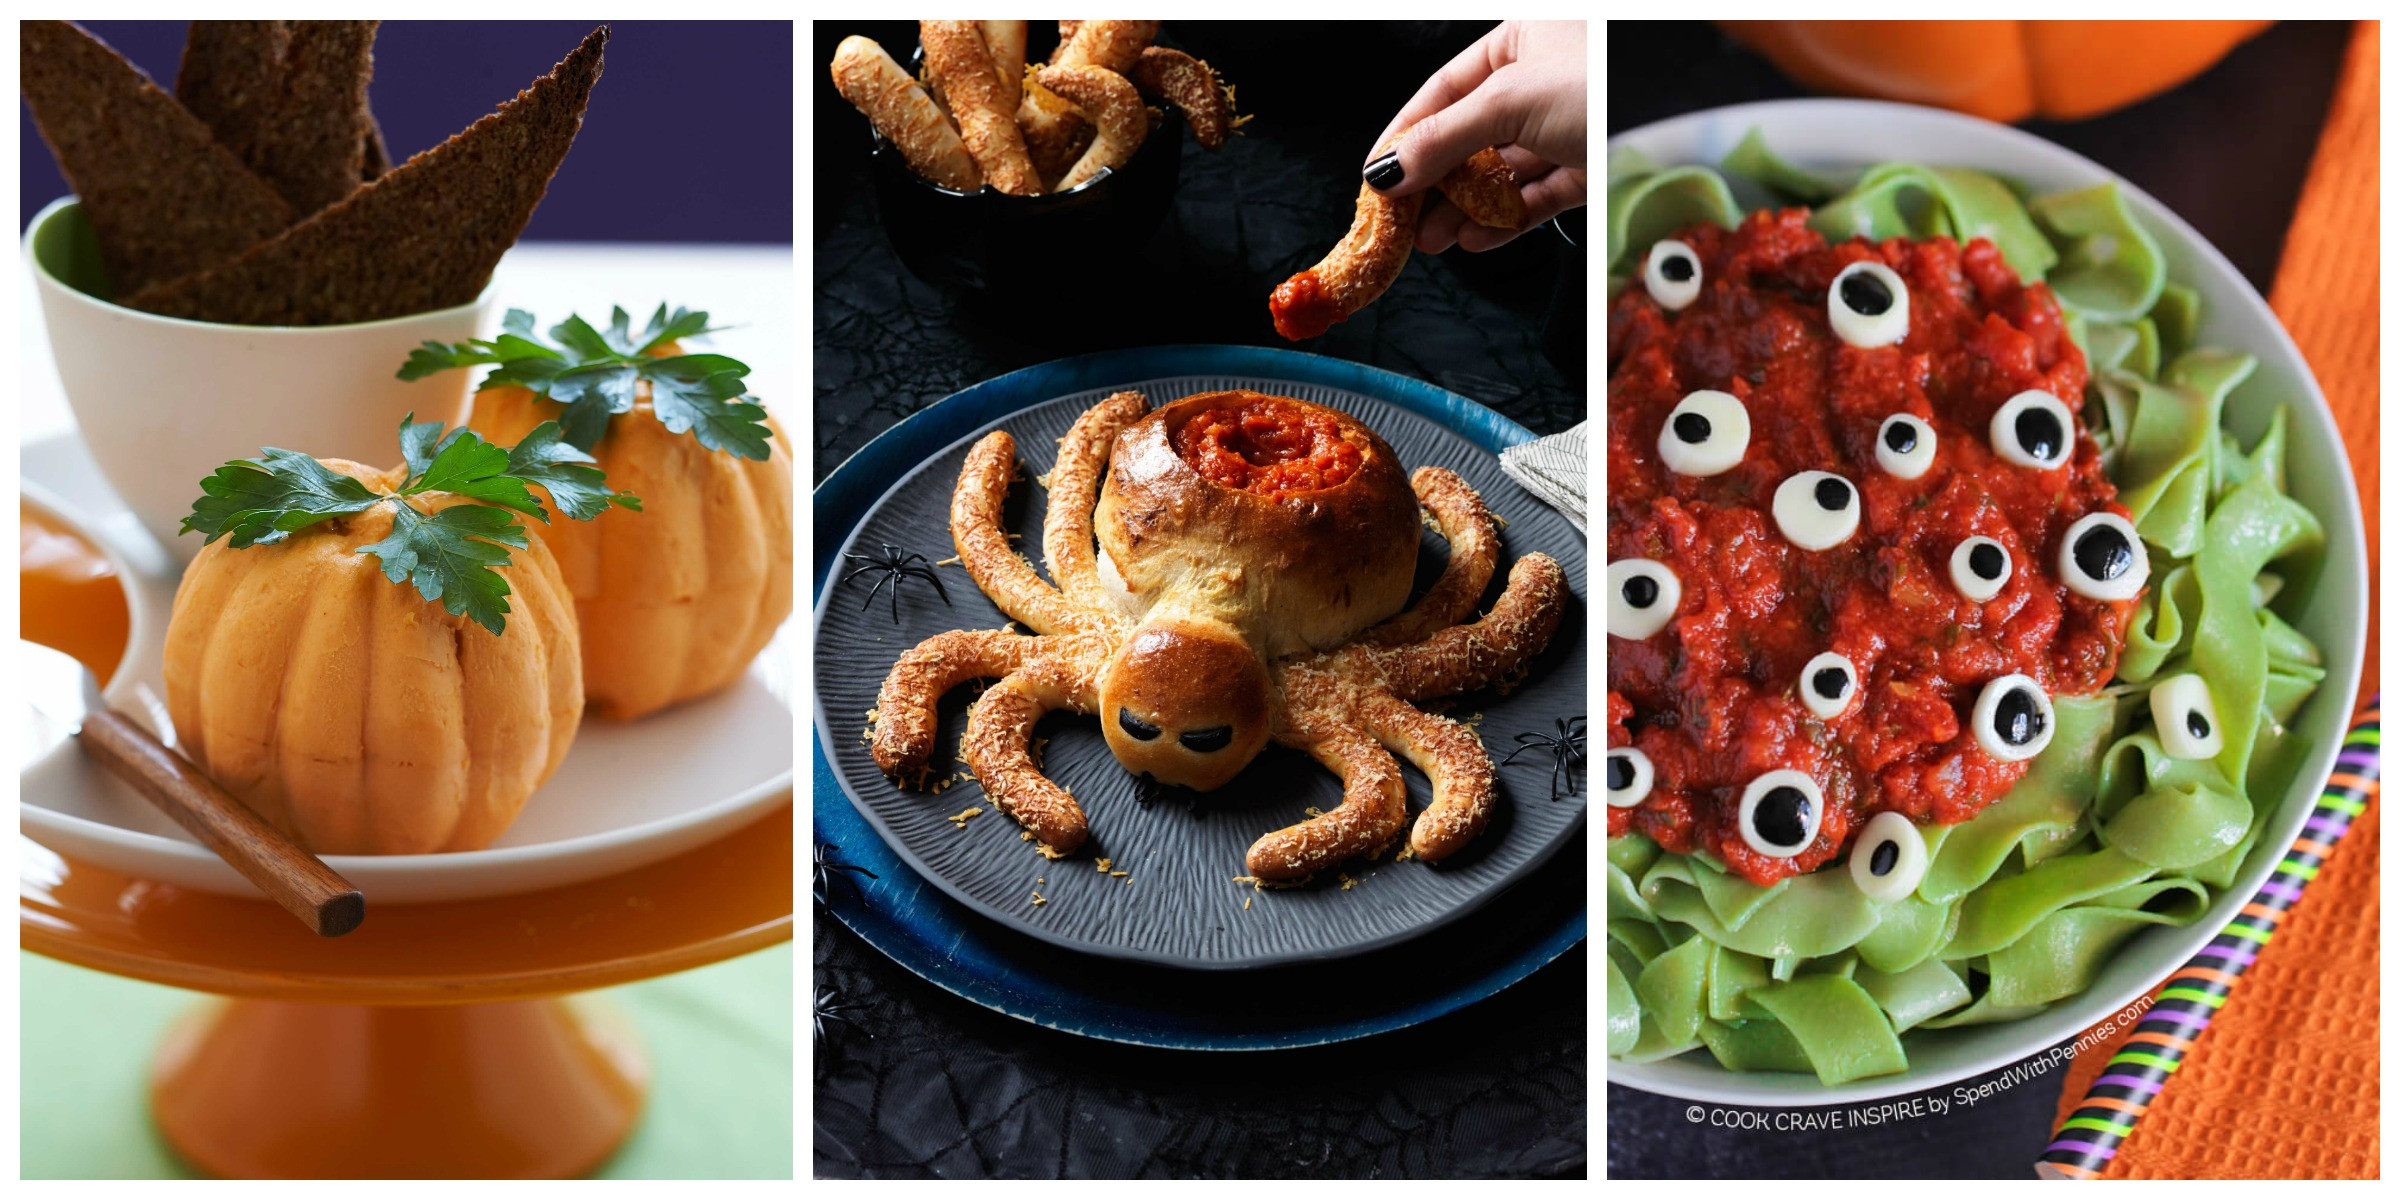 Easy Halloween Dinners  25 Spooky Halloween Dinner Ideas Best Recipes for